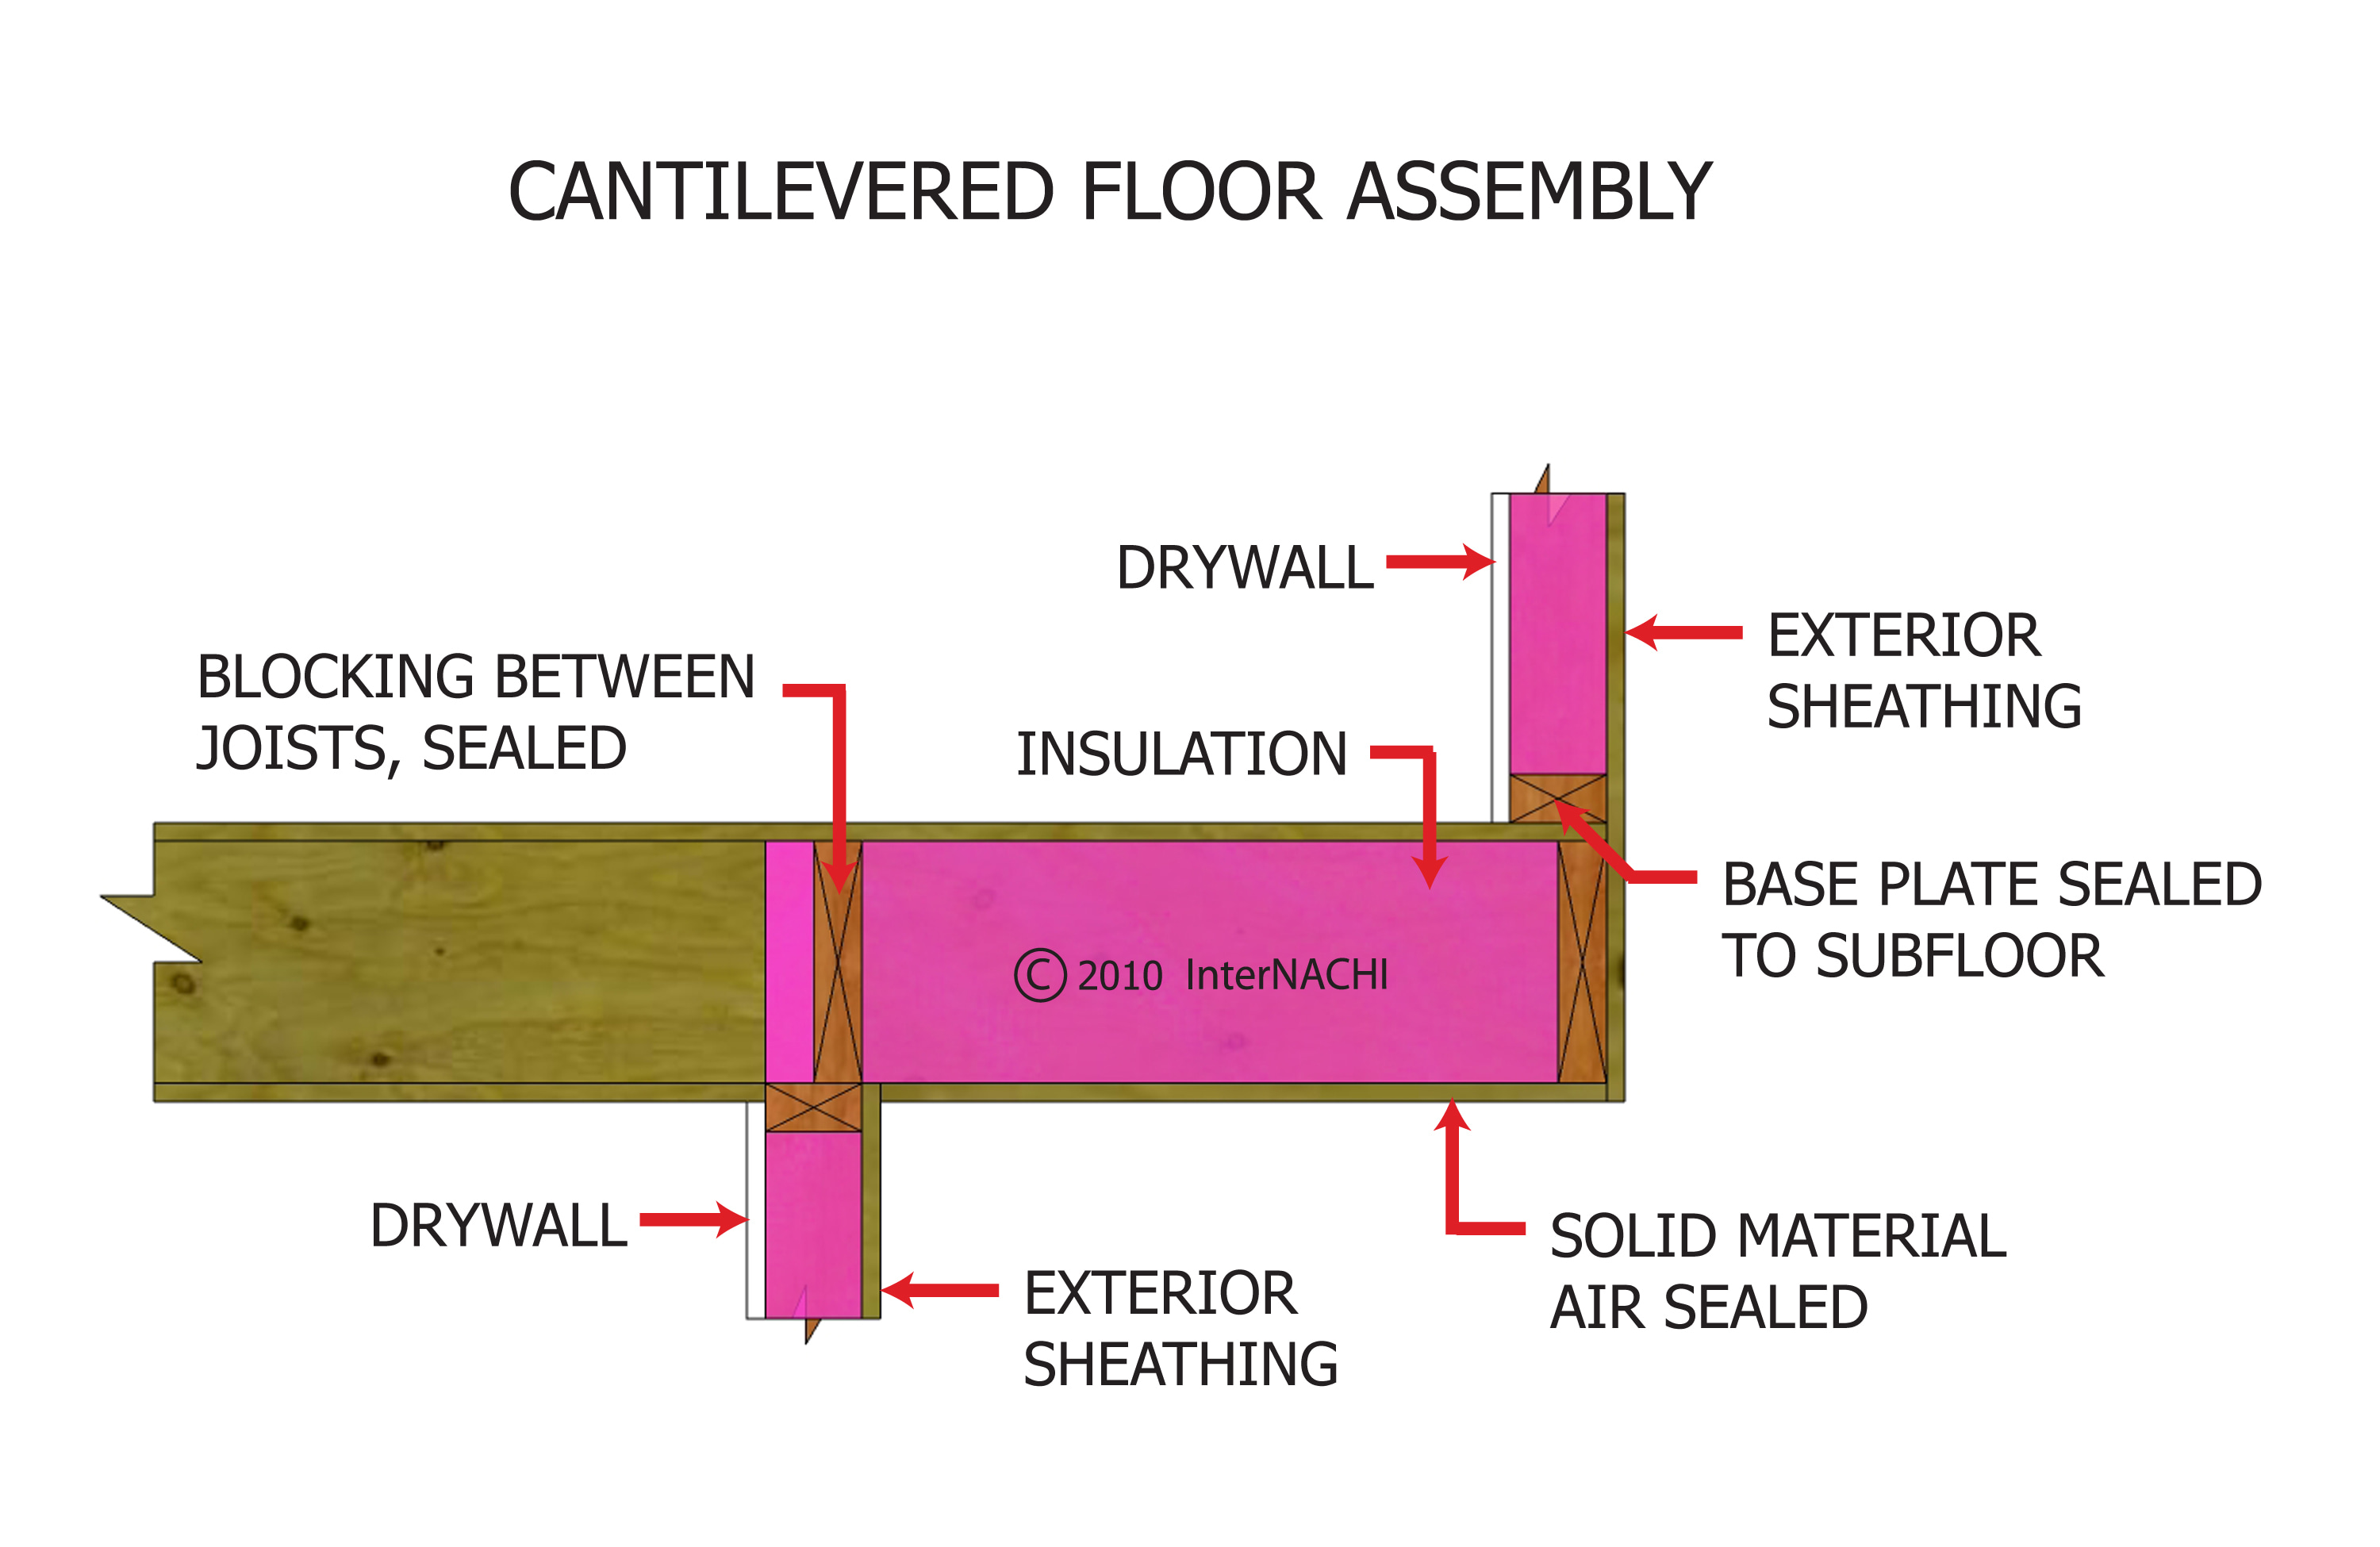 Cantilevered floor assembly.